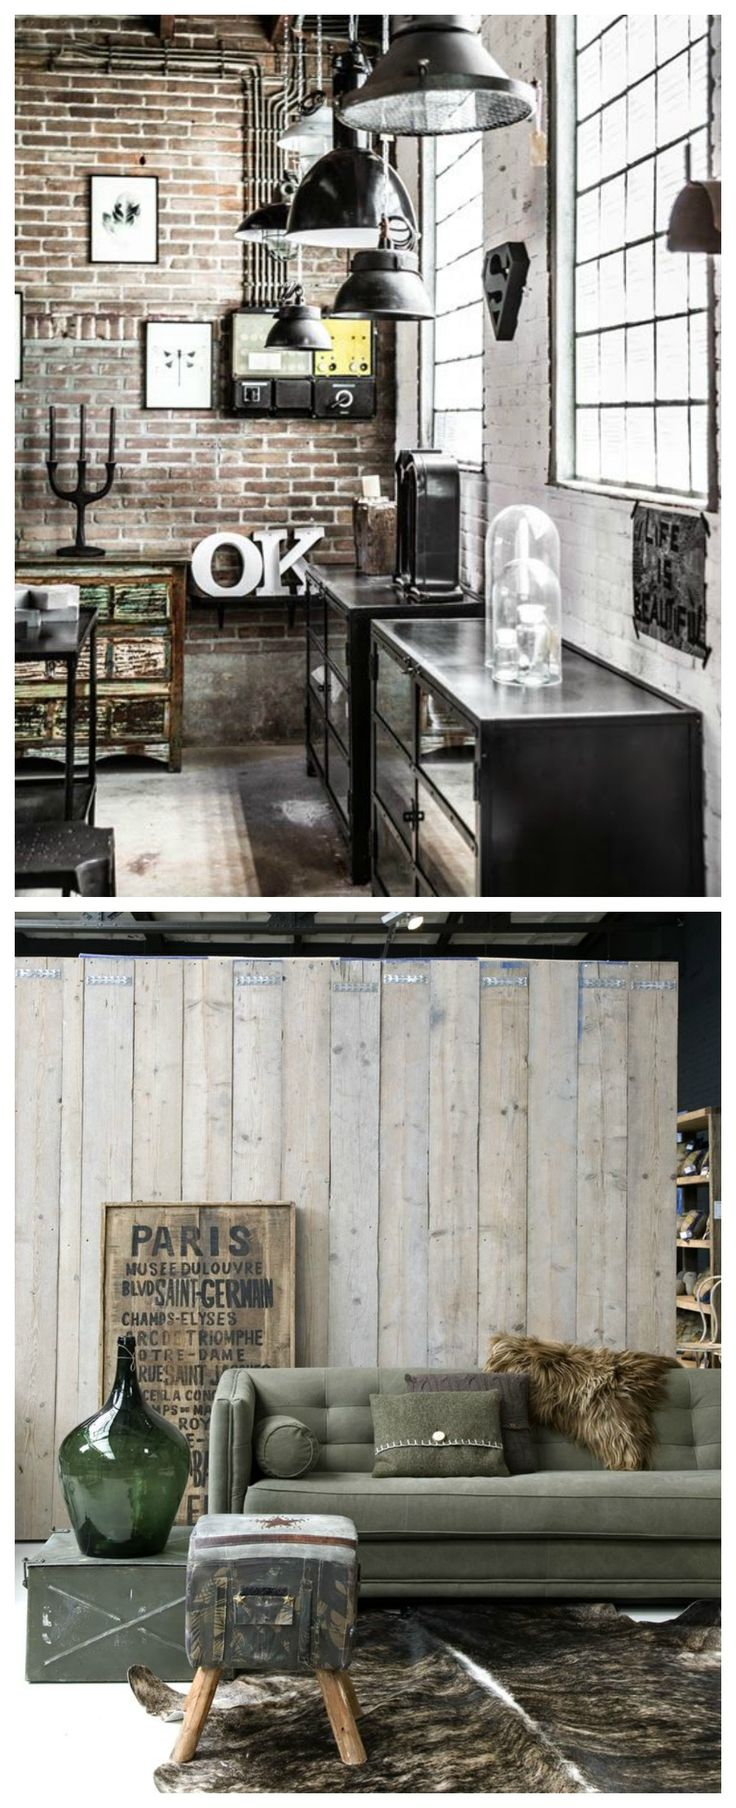 17 mejores ideas sobre apartamento industrial en pinterest for Diseno estilo industrial